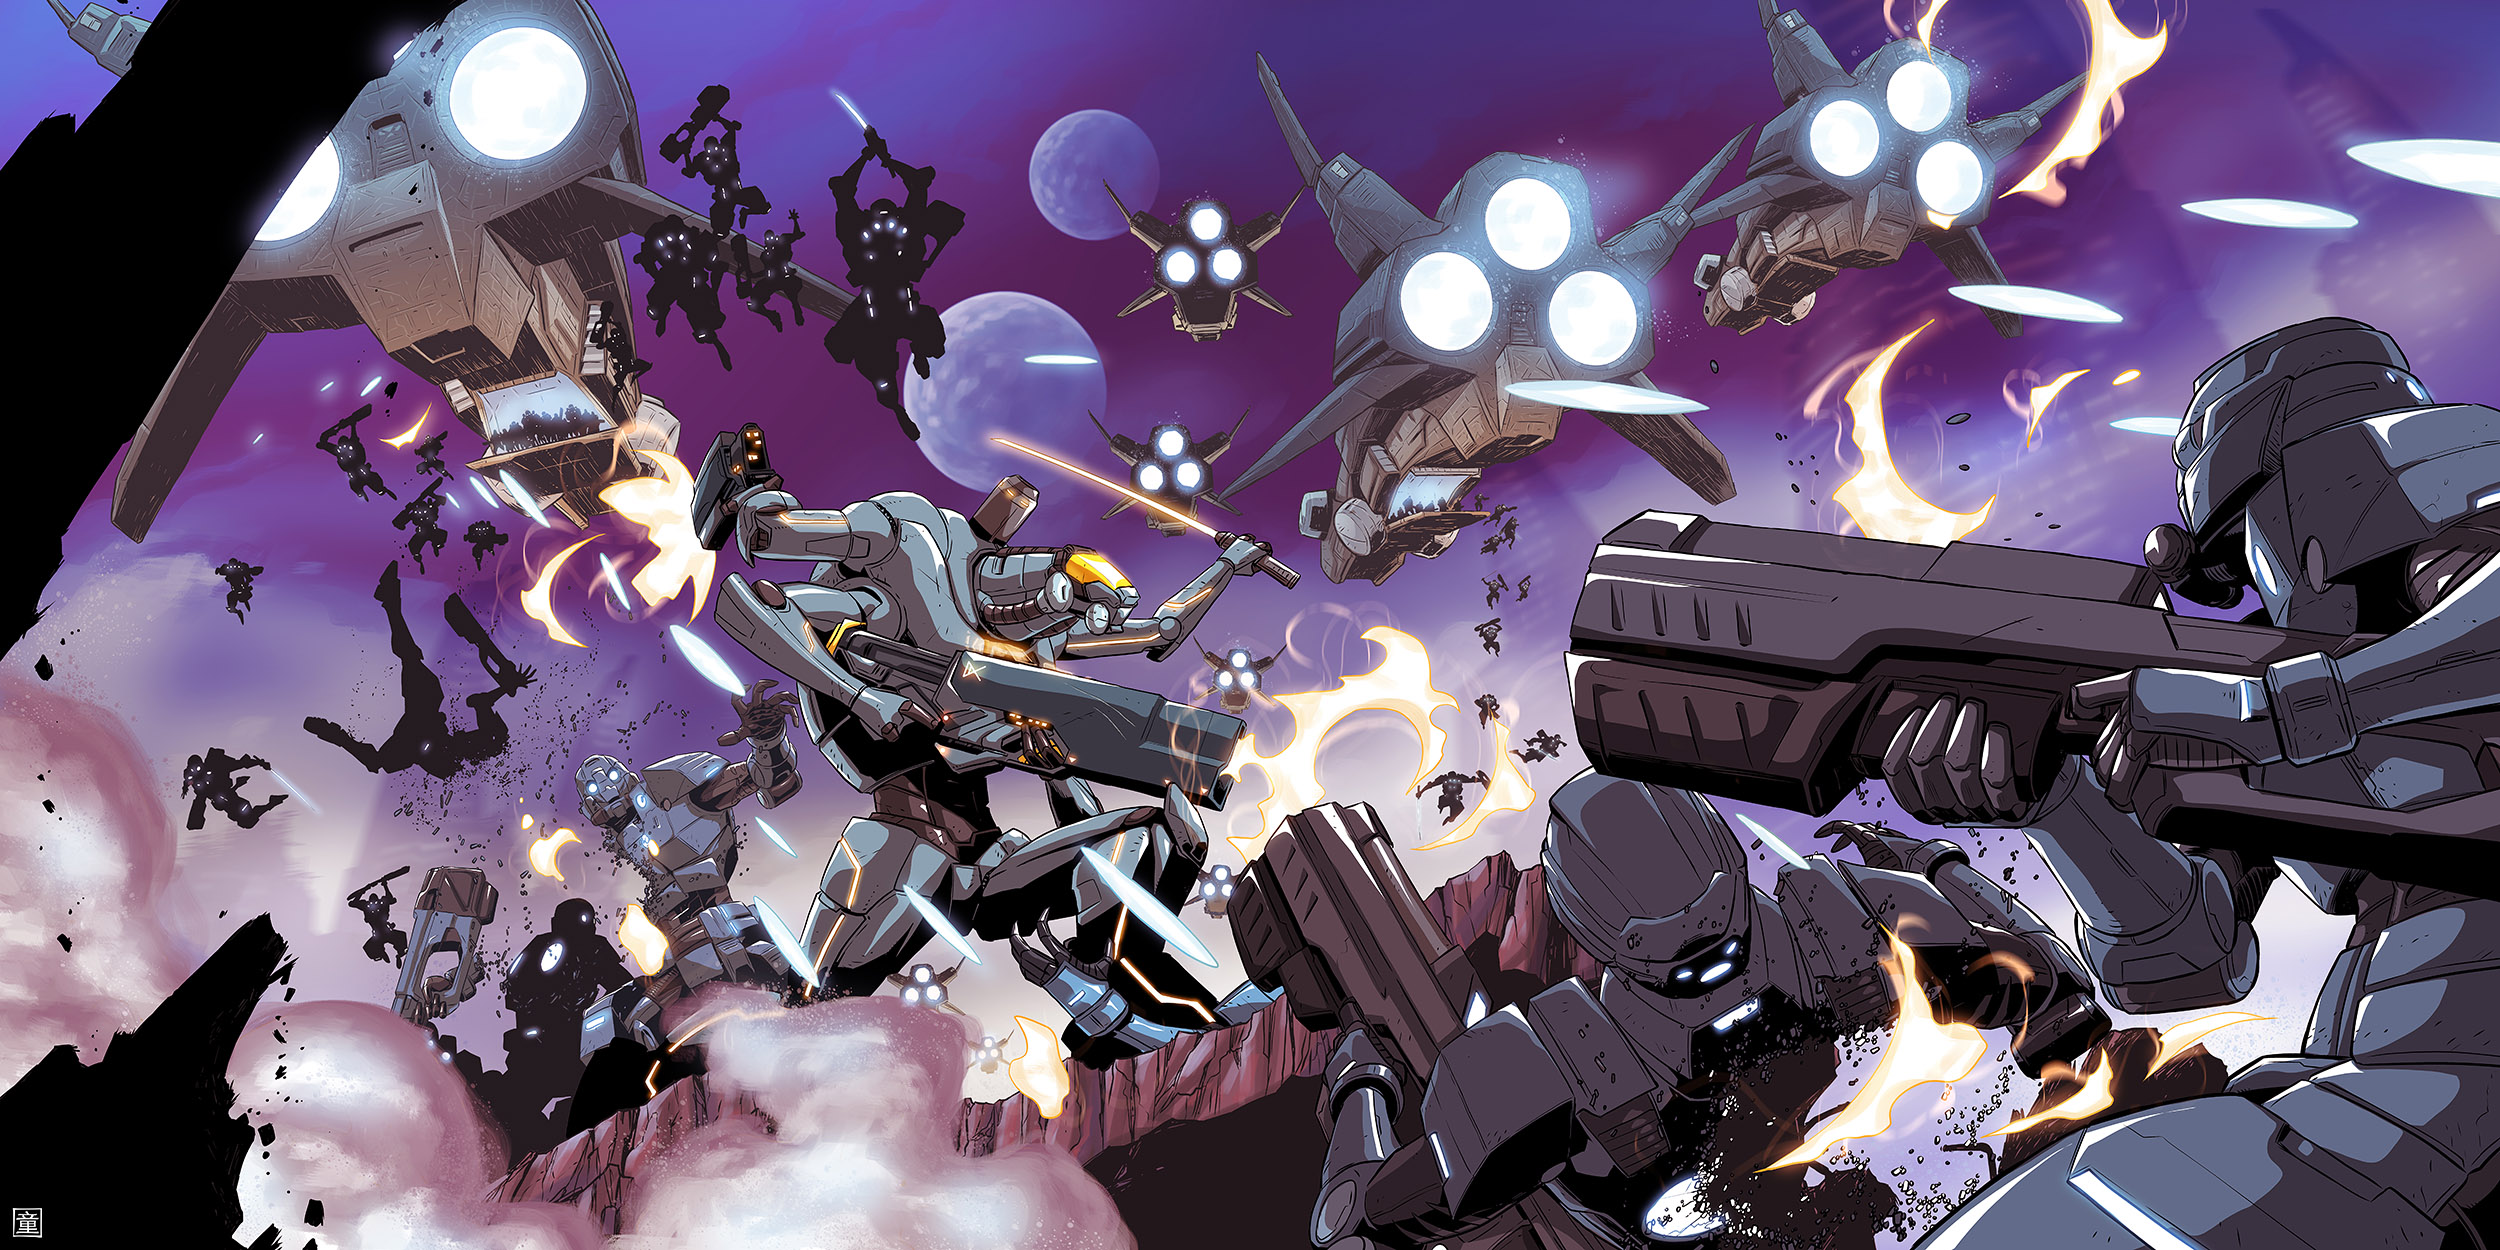 The entire alien world portion, featuring the Block-nosed Rifle being used by an intergalactic warrior in a battle against 1000 foot soldiers.